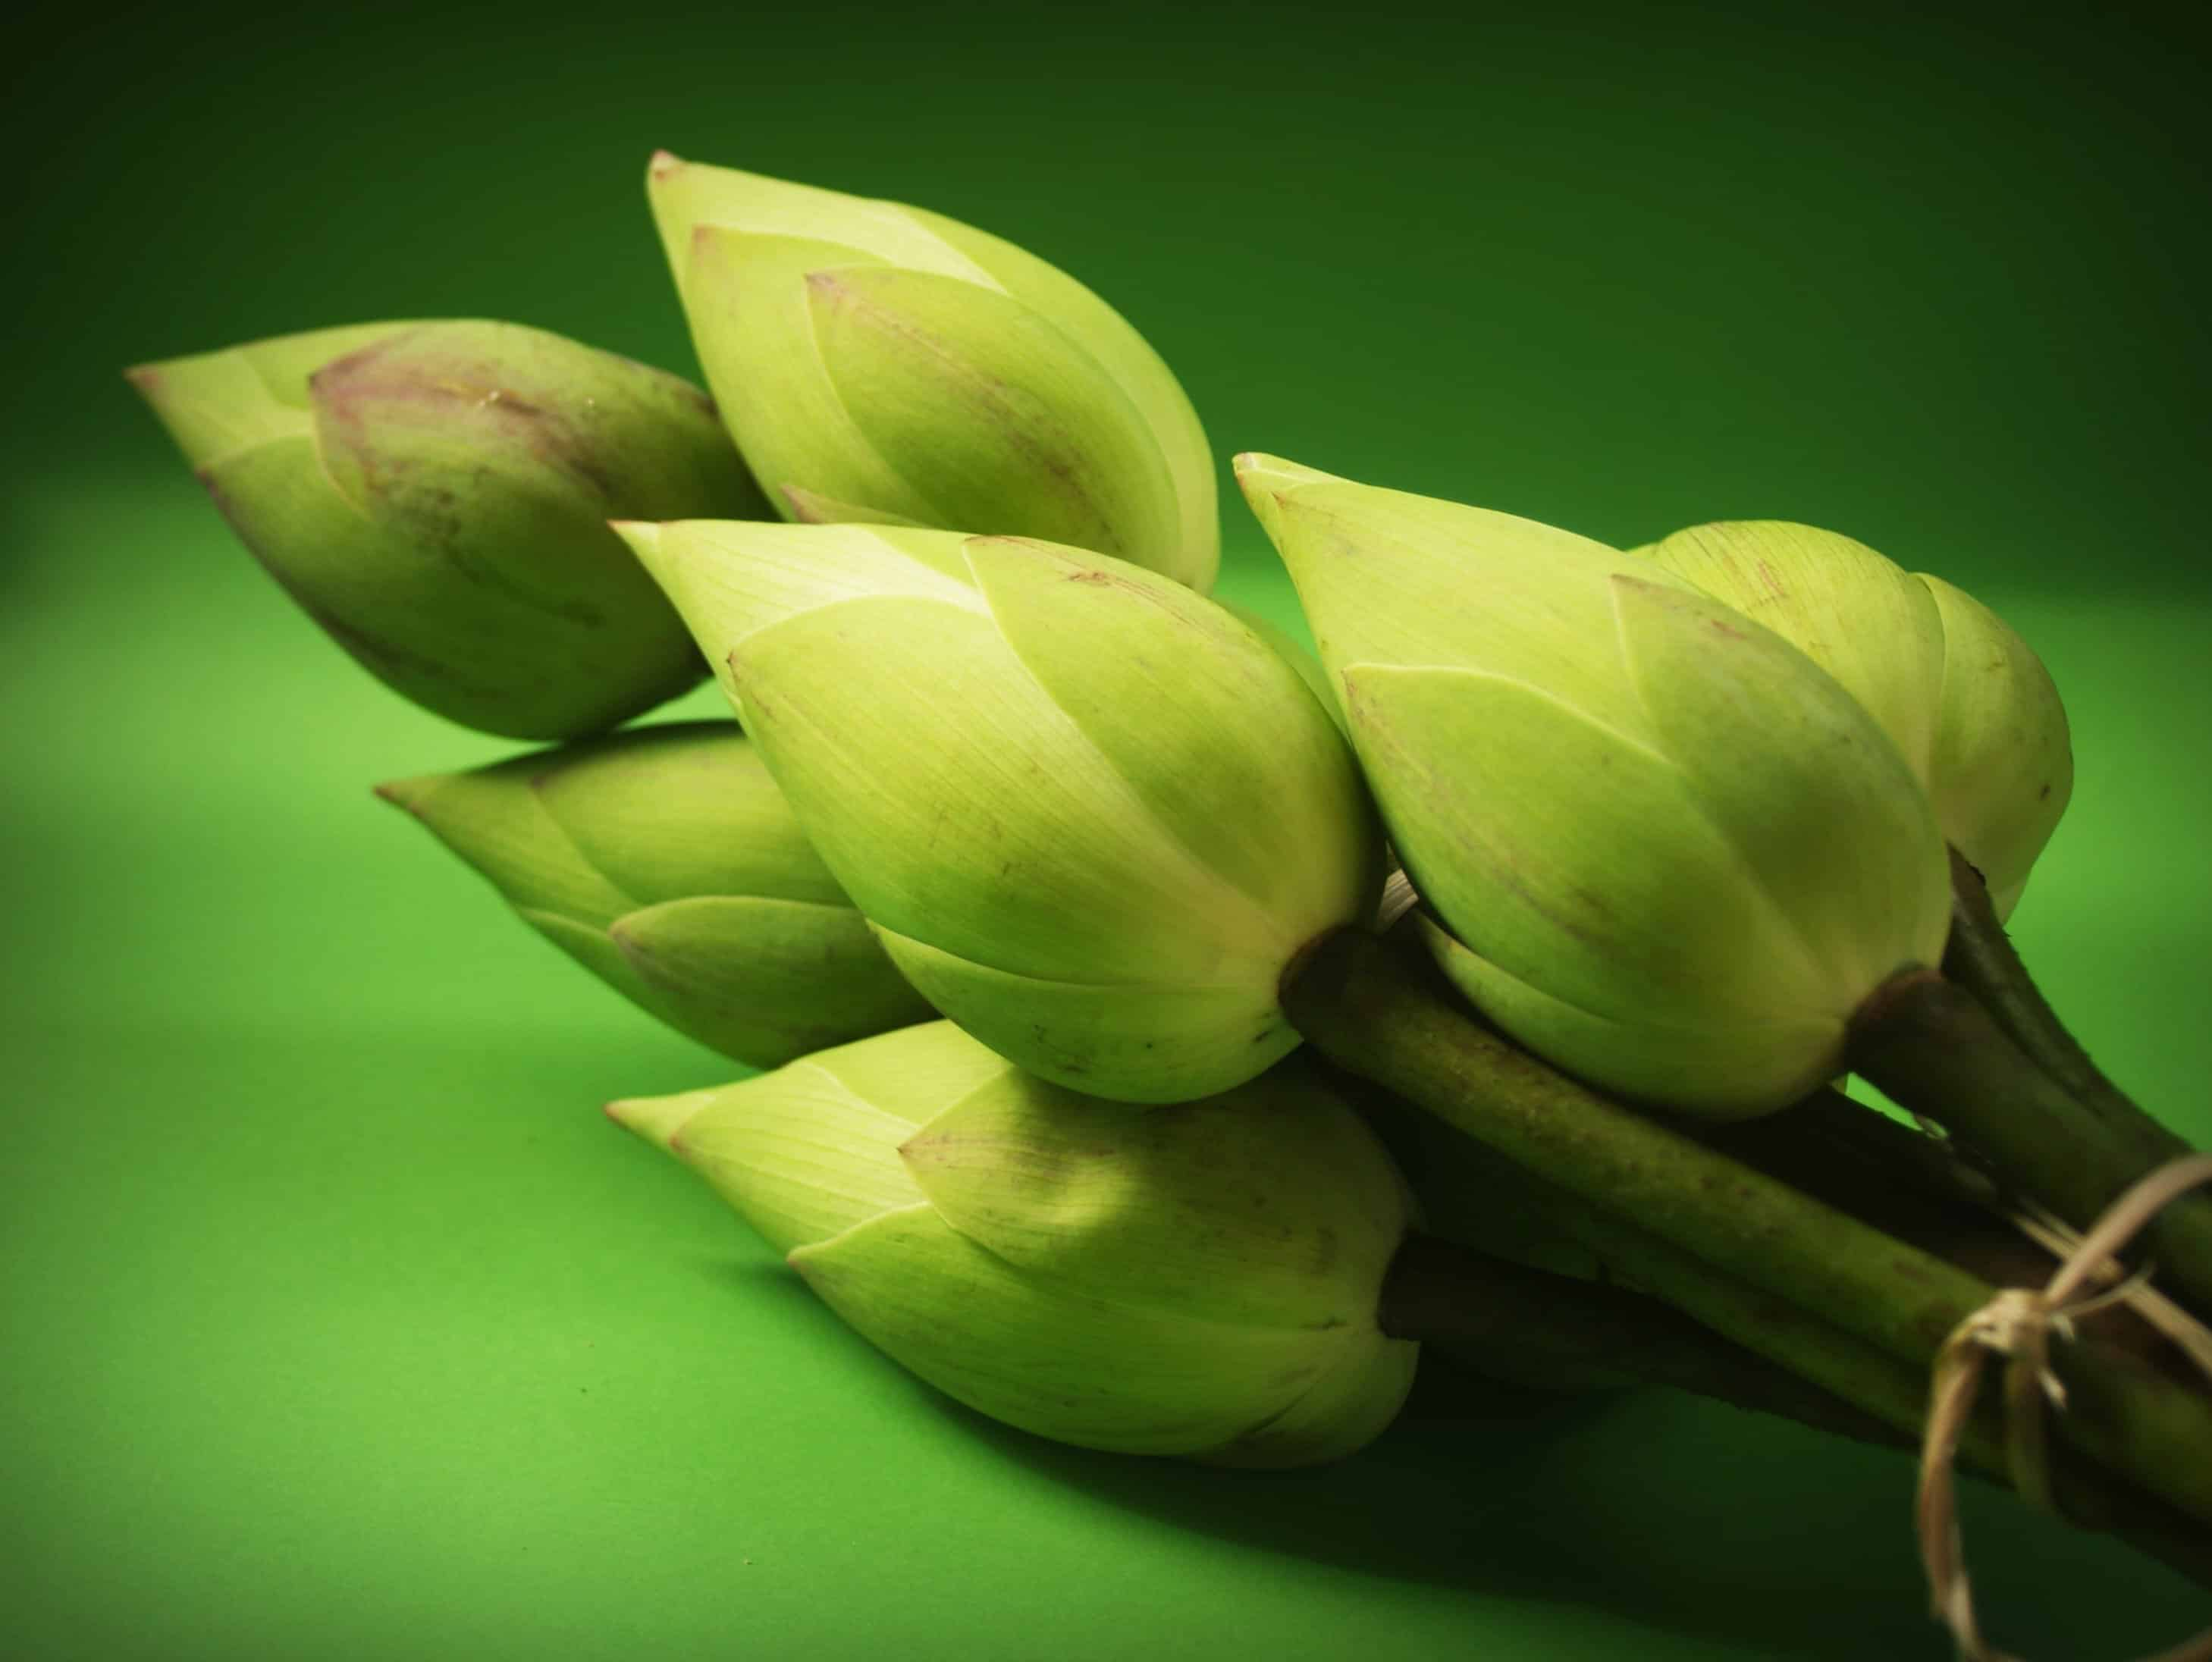 Free picture nature flower bud lotus flora leaf nature flower bud lotus flora leaf izmirmasajfo